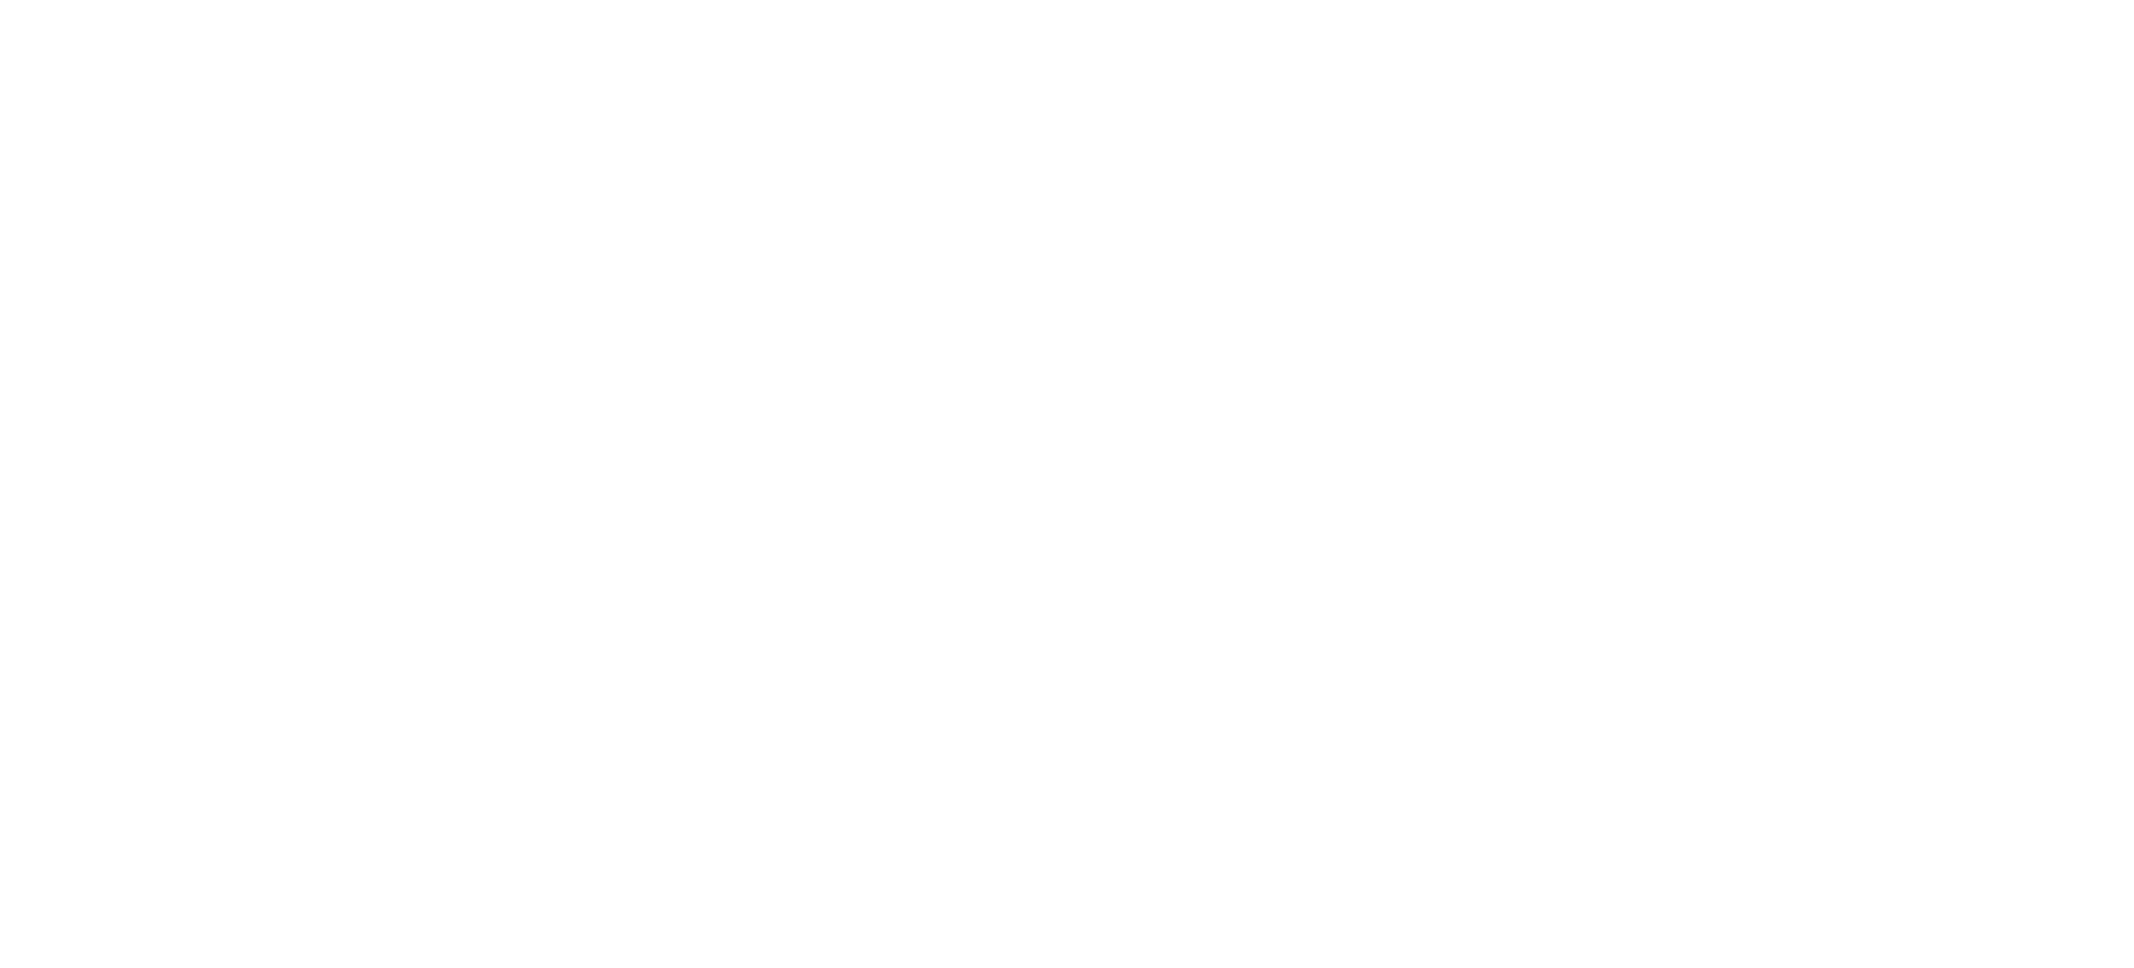 Things To Do in Bardstown, KY - Visit Bardstown